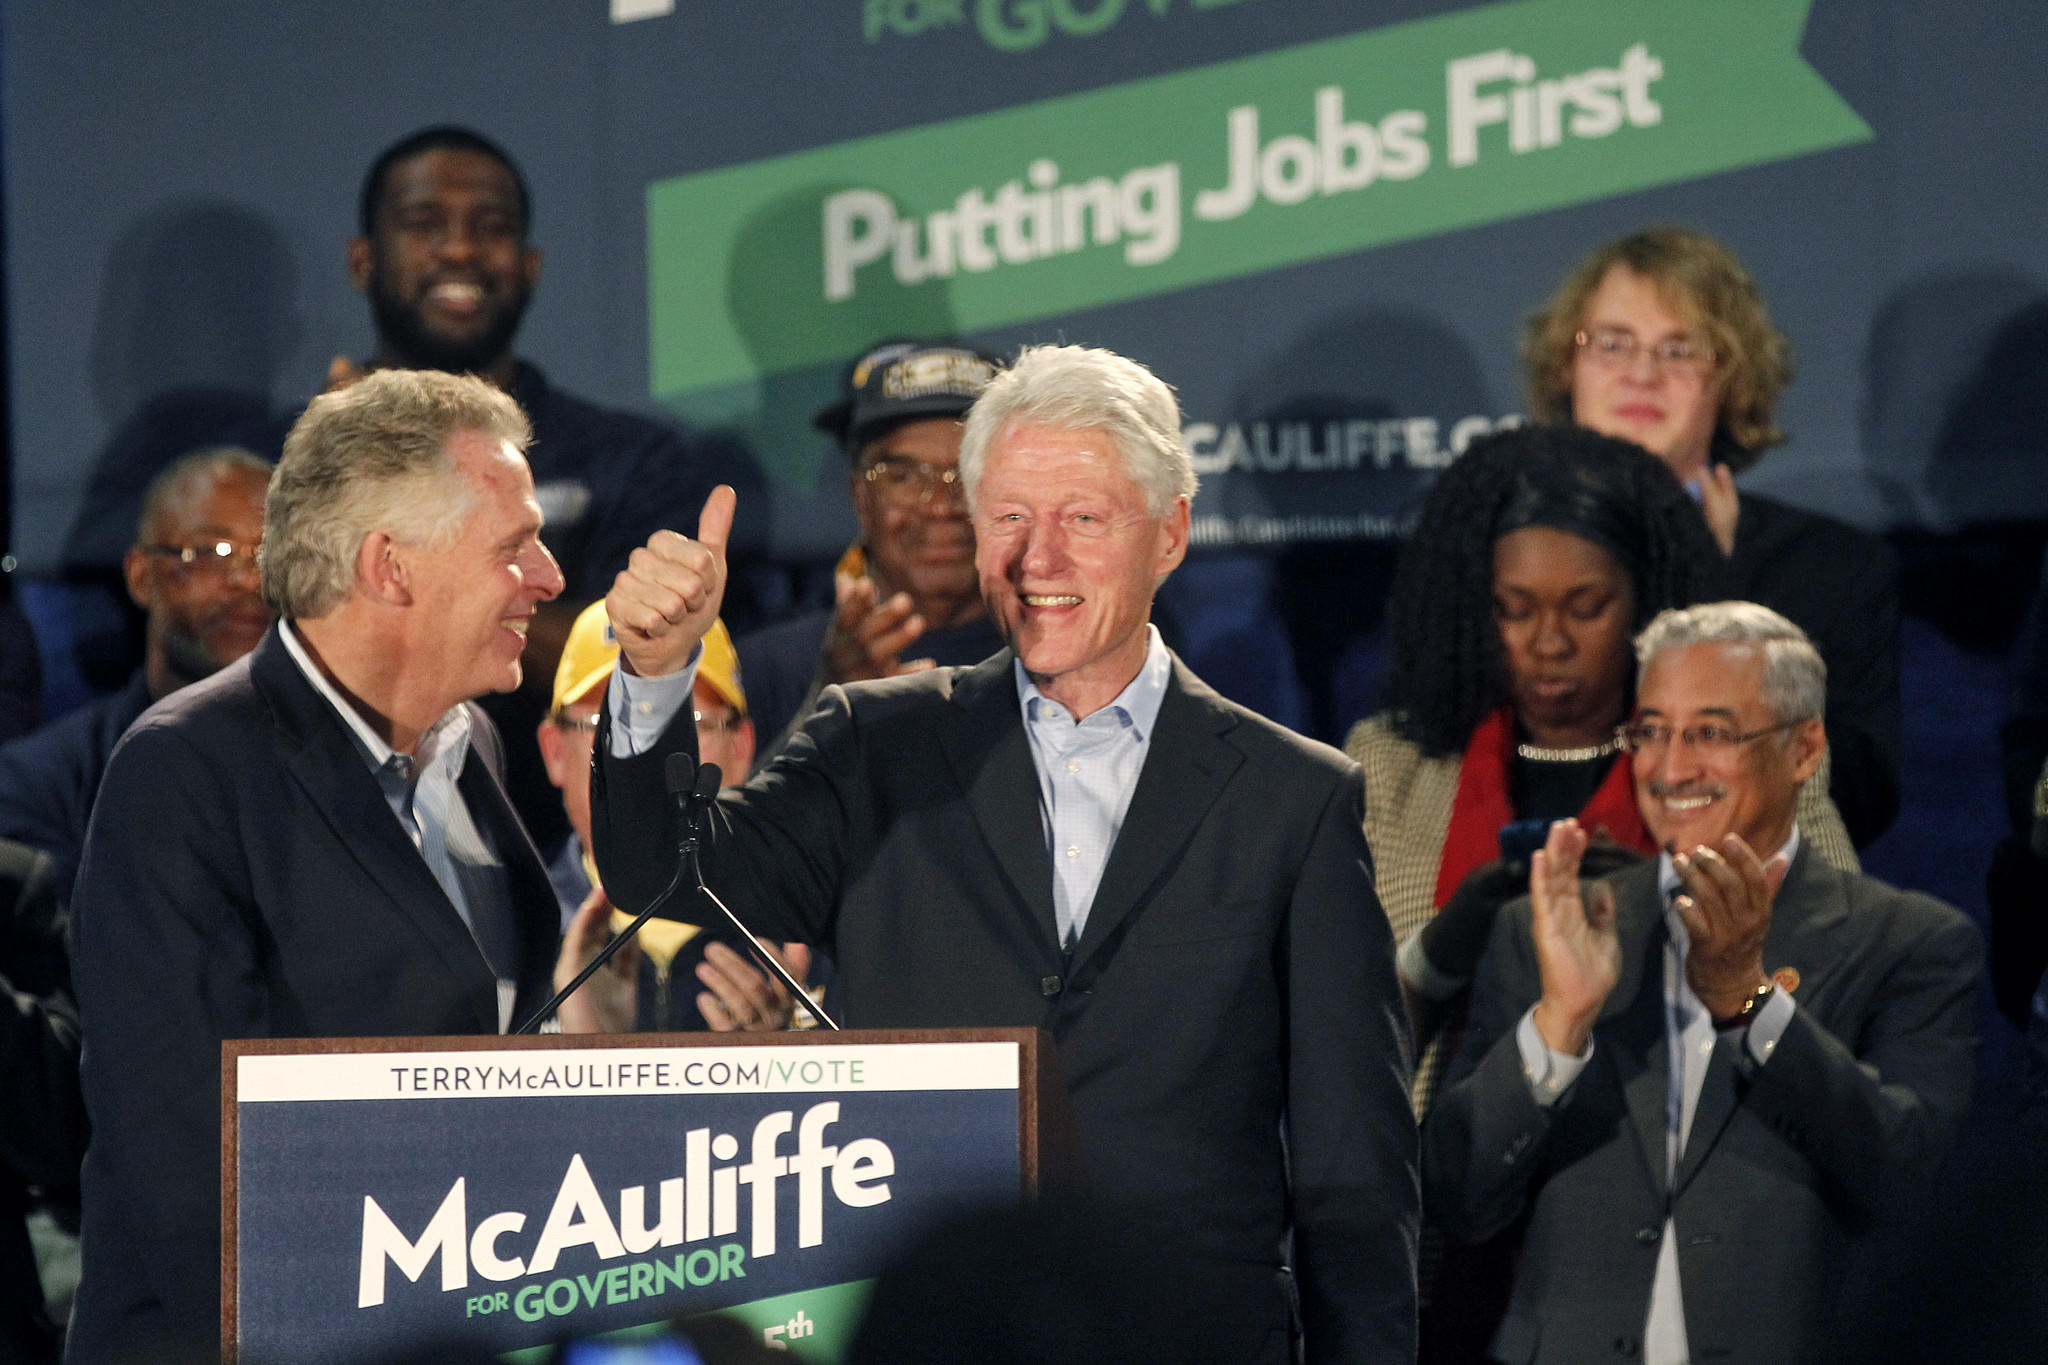 Former President Bill Clinton speaks during an event with Democratic gubernatorial candidate Terry McAuliffe Sunday evening at the Y.H. Thomas Community Center in Hampton.